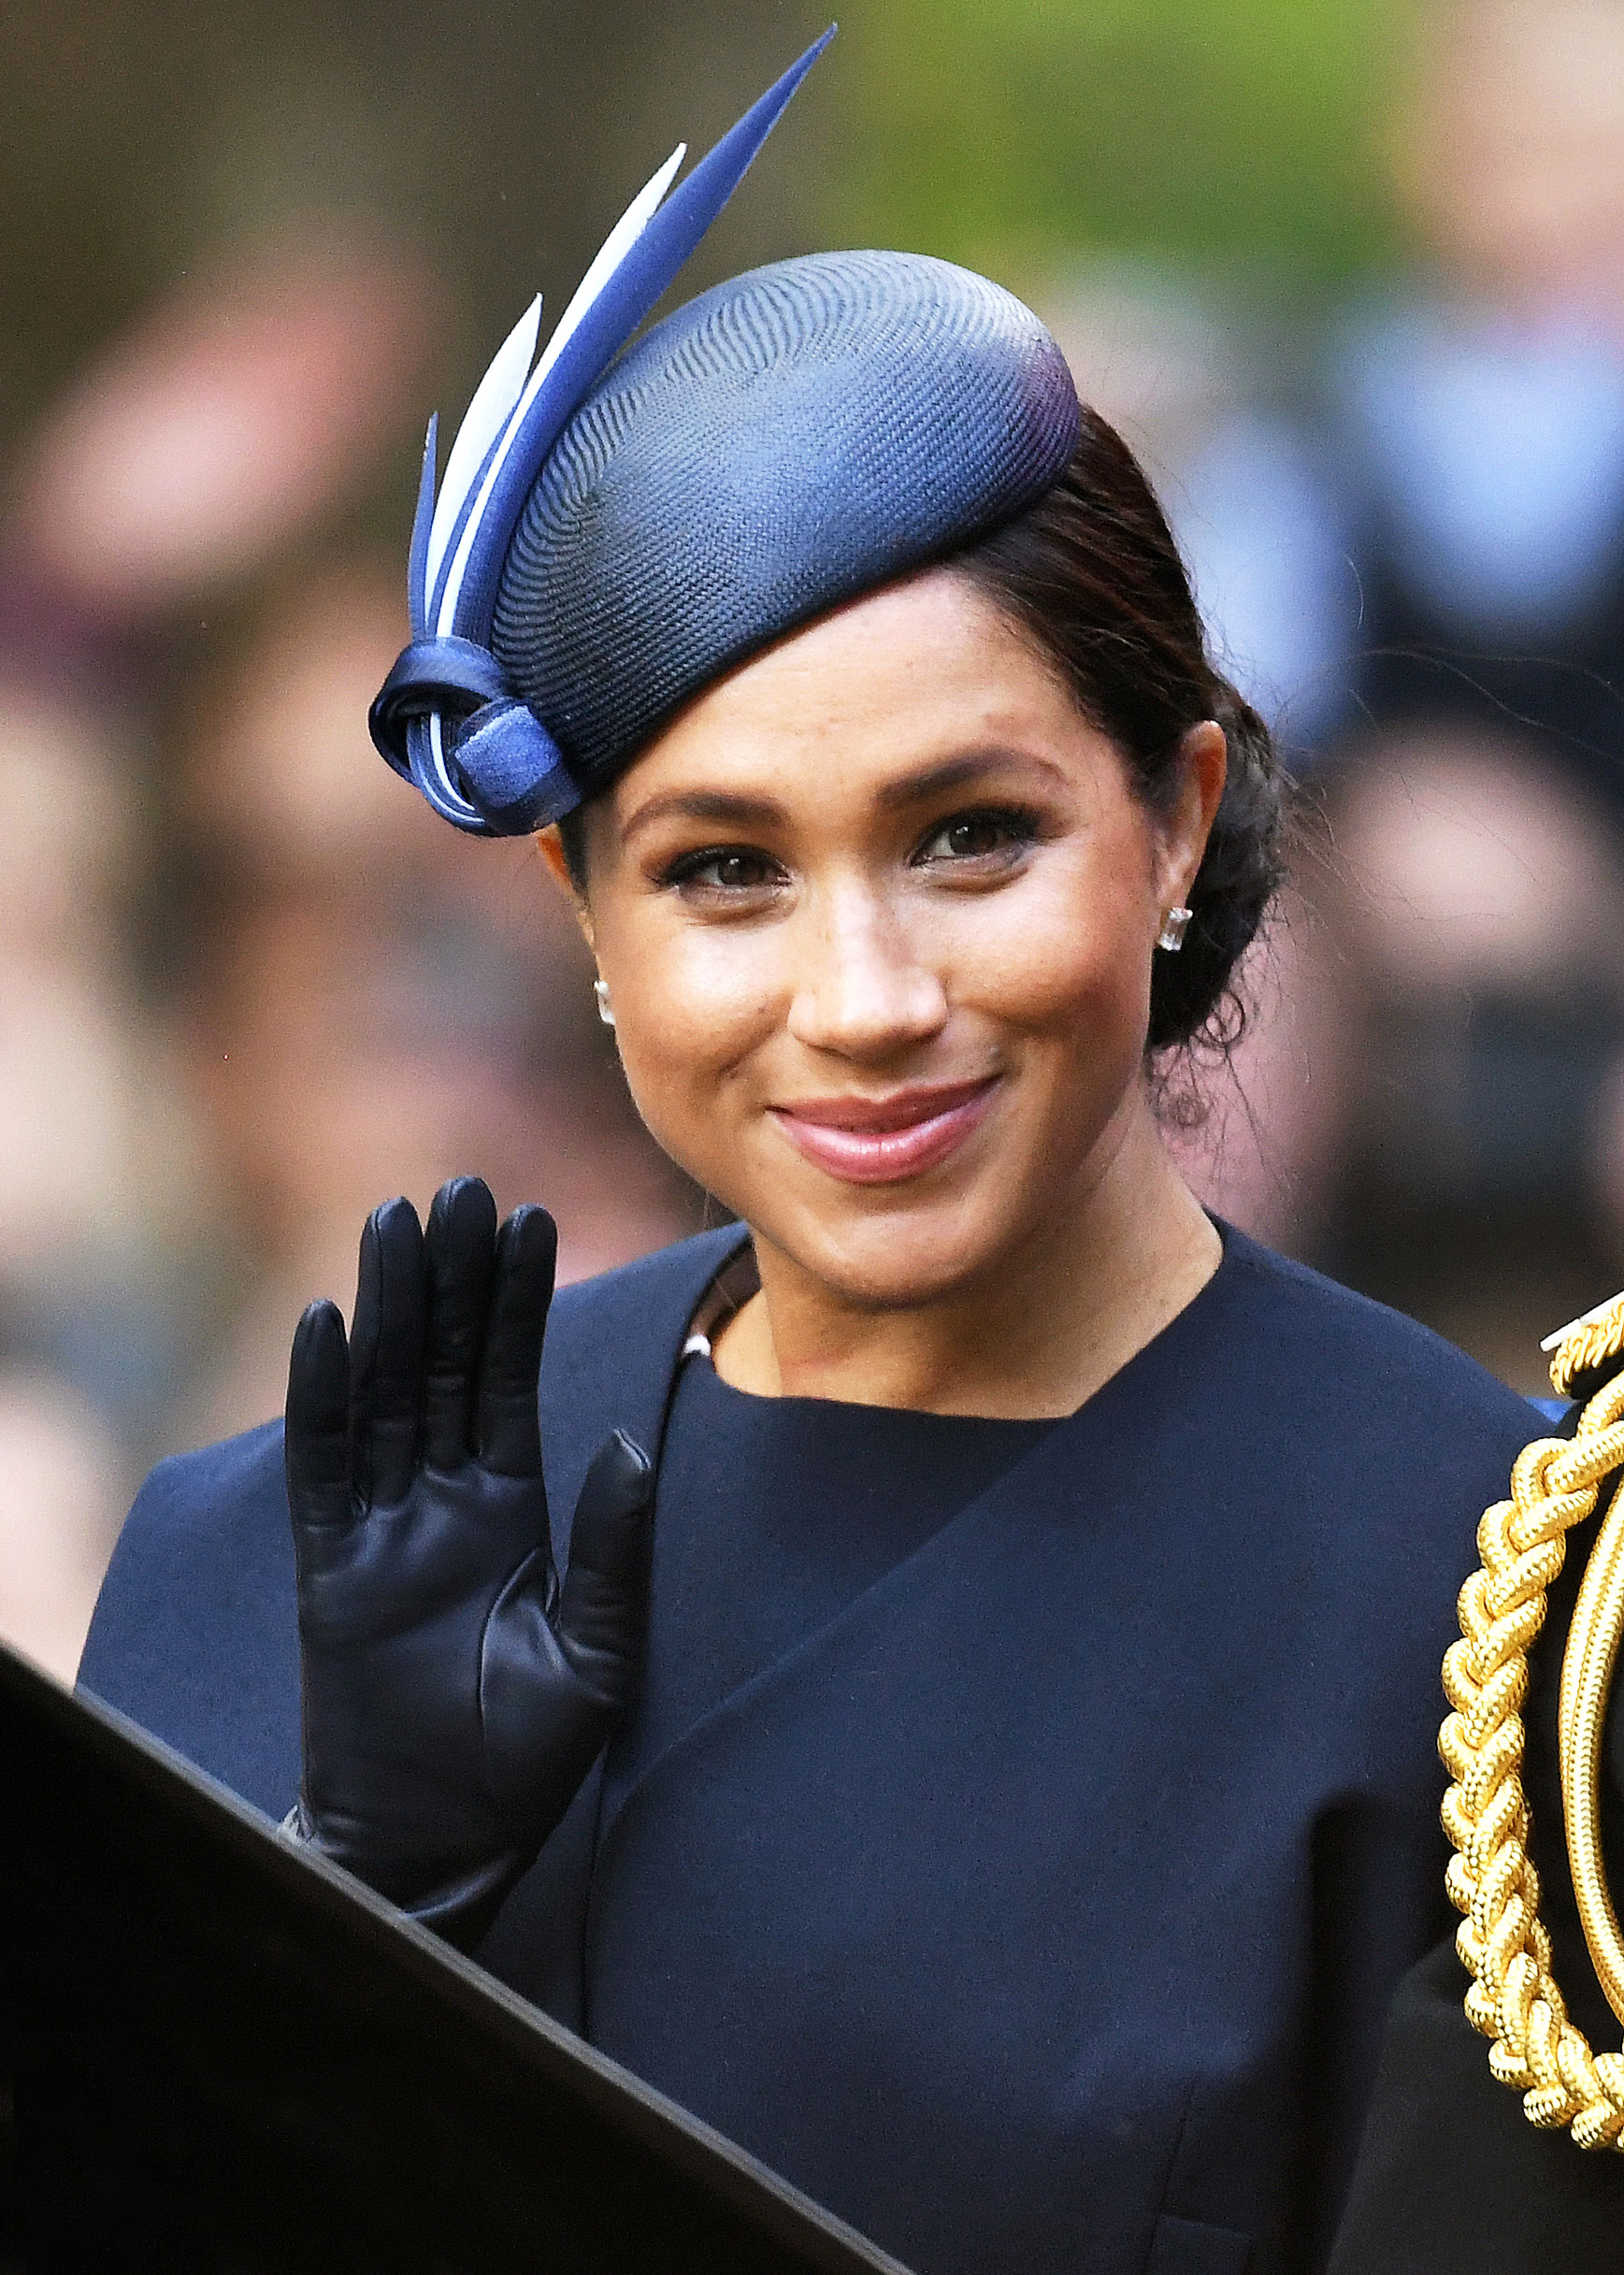 Confirmed: Duchess Meghan Redesigned Her Engagement Ring With More Diamonds! thumbnail